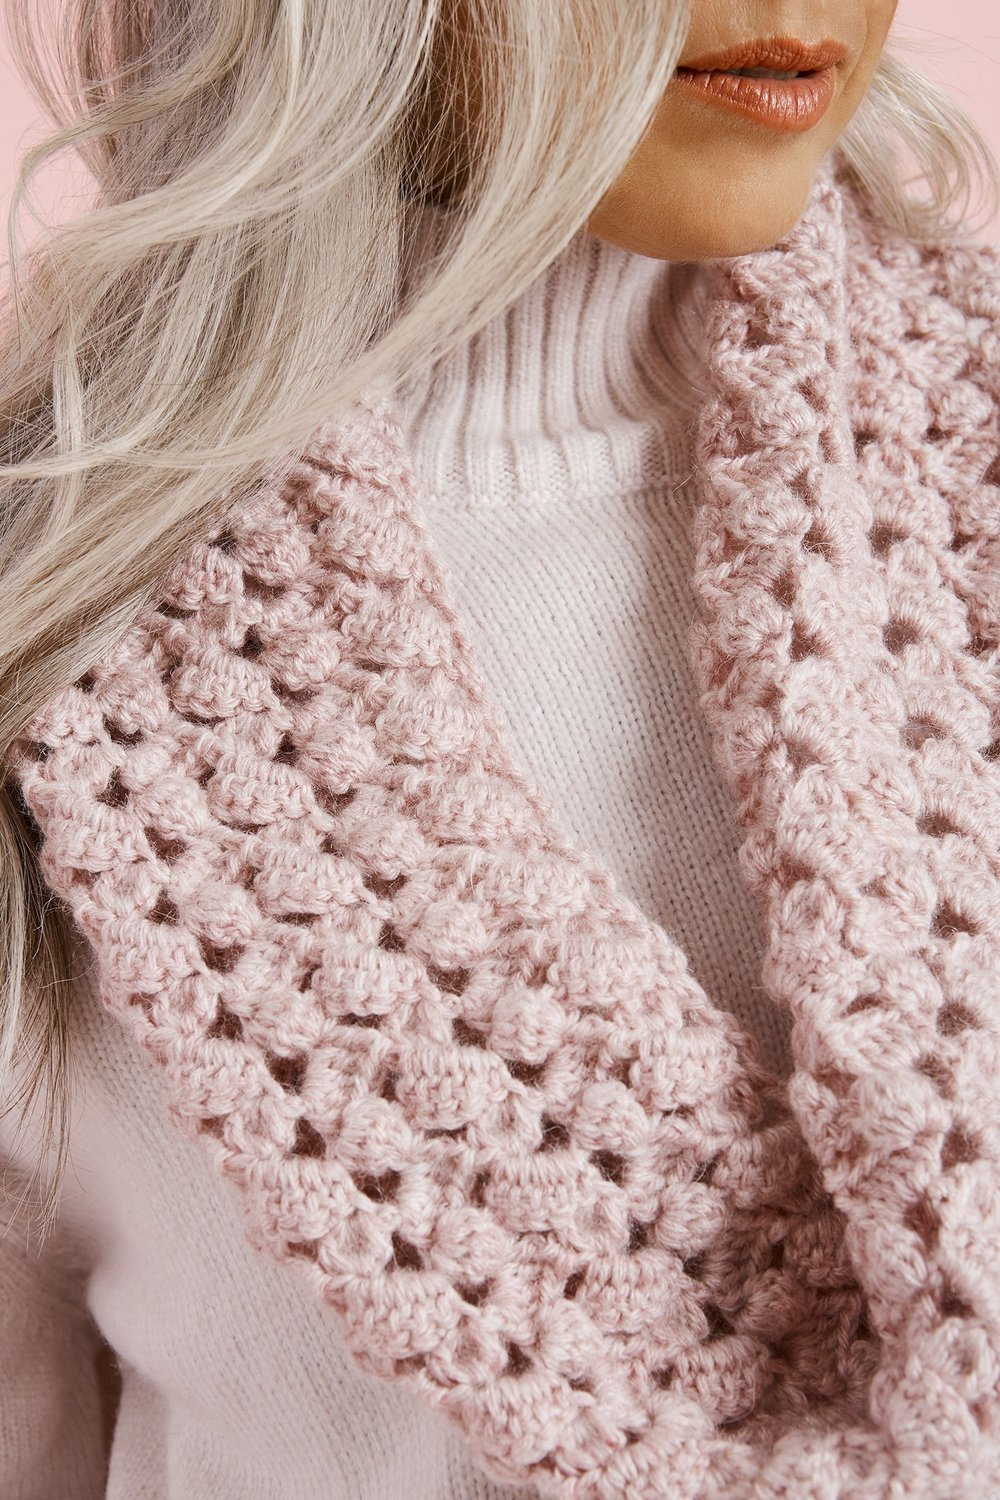 f160b71defb9 The Saugerties Cowl is an elegant crochet number that not only exudes  romance in color but also in design. It would be a lovely addition to any  Valentine s ...